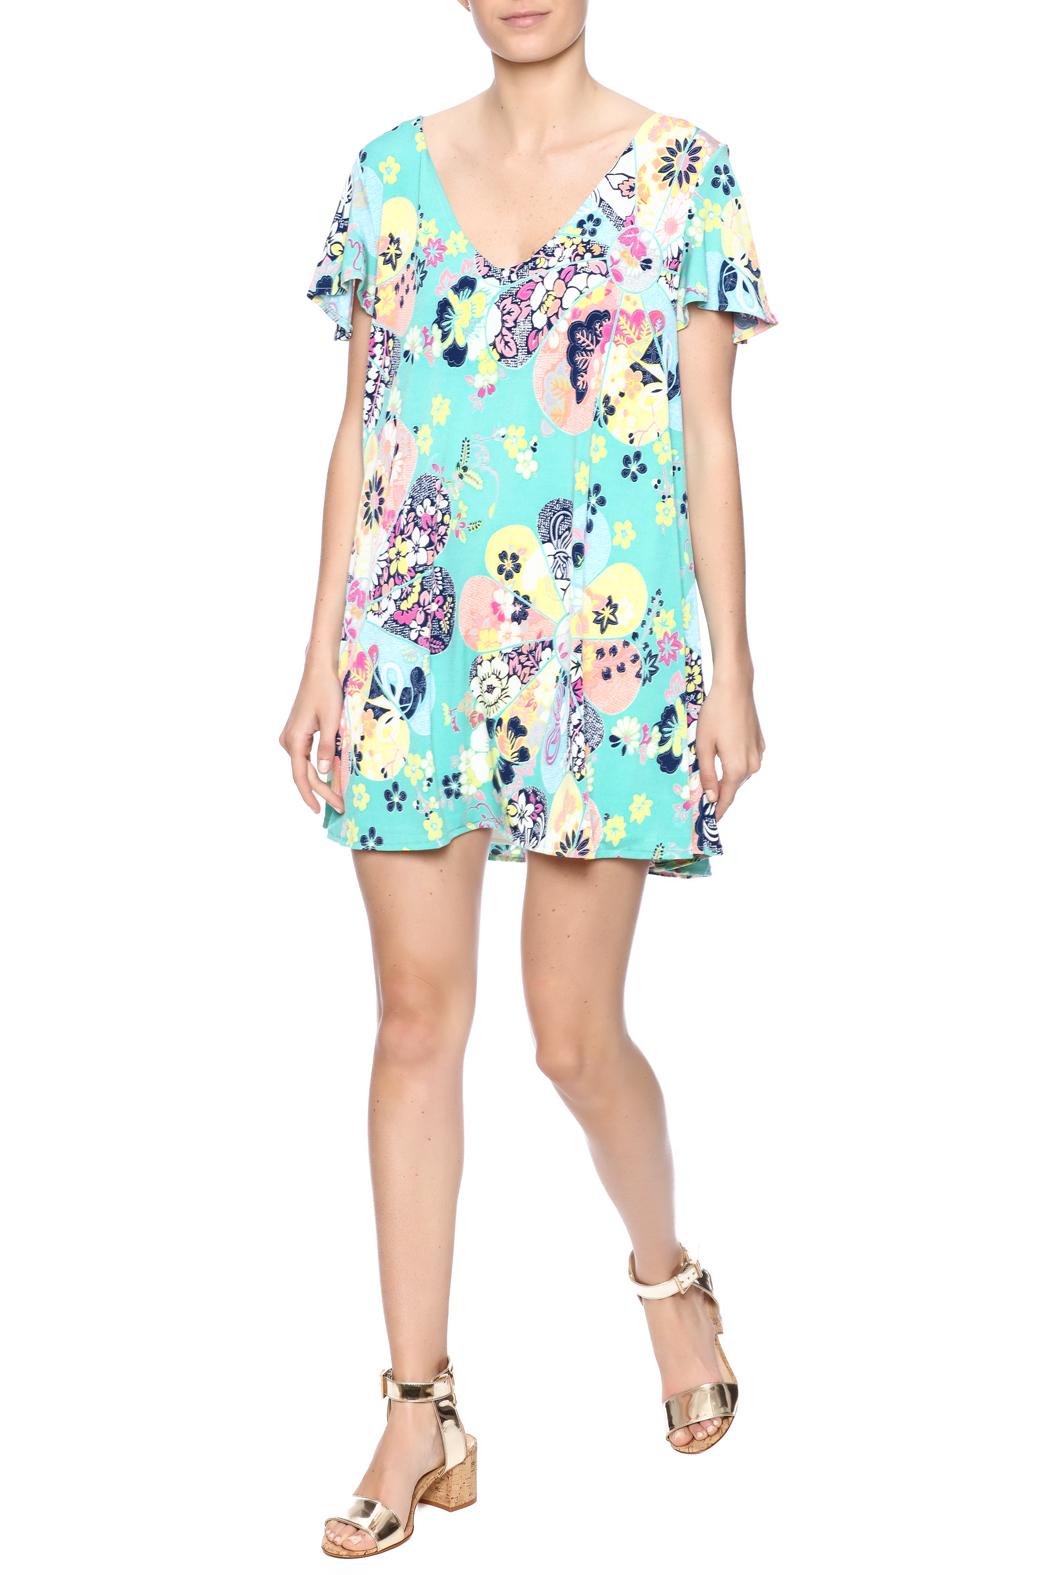 Judith March Japanese Floral Dress - Front Full Image